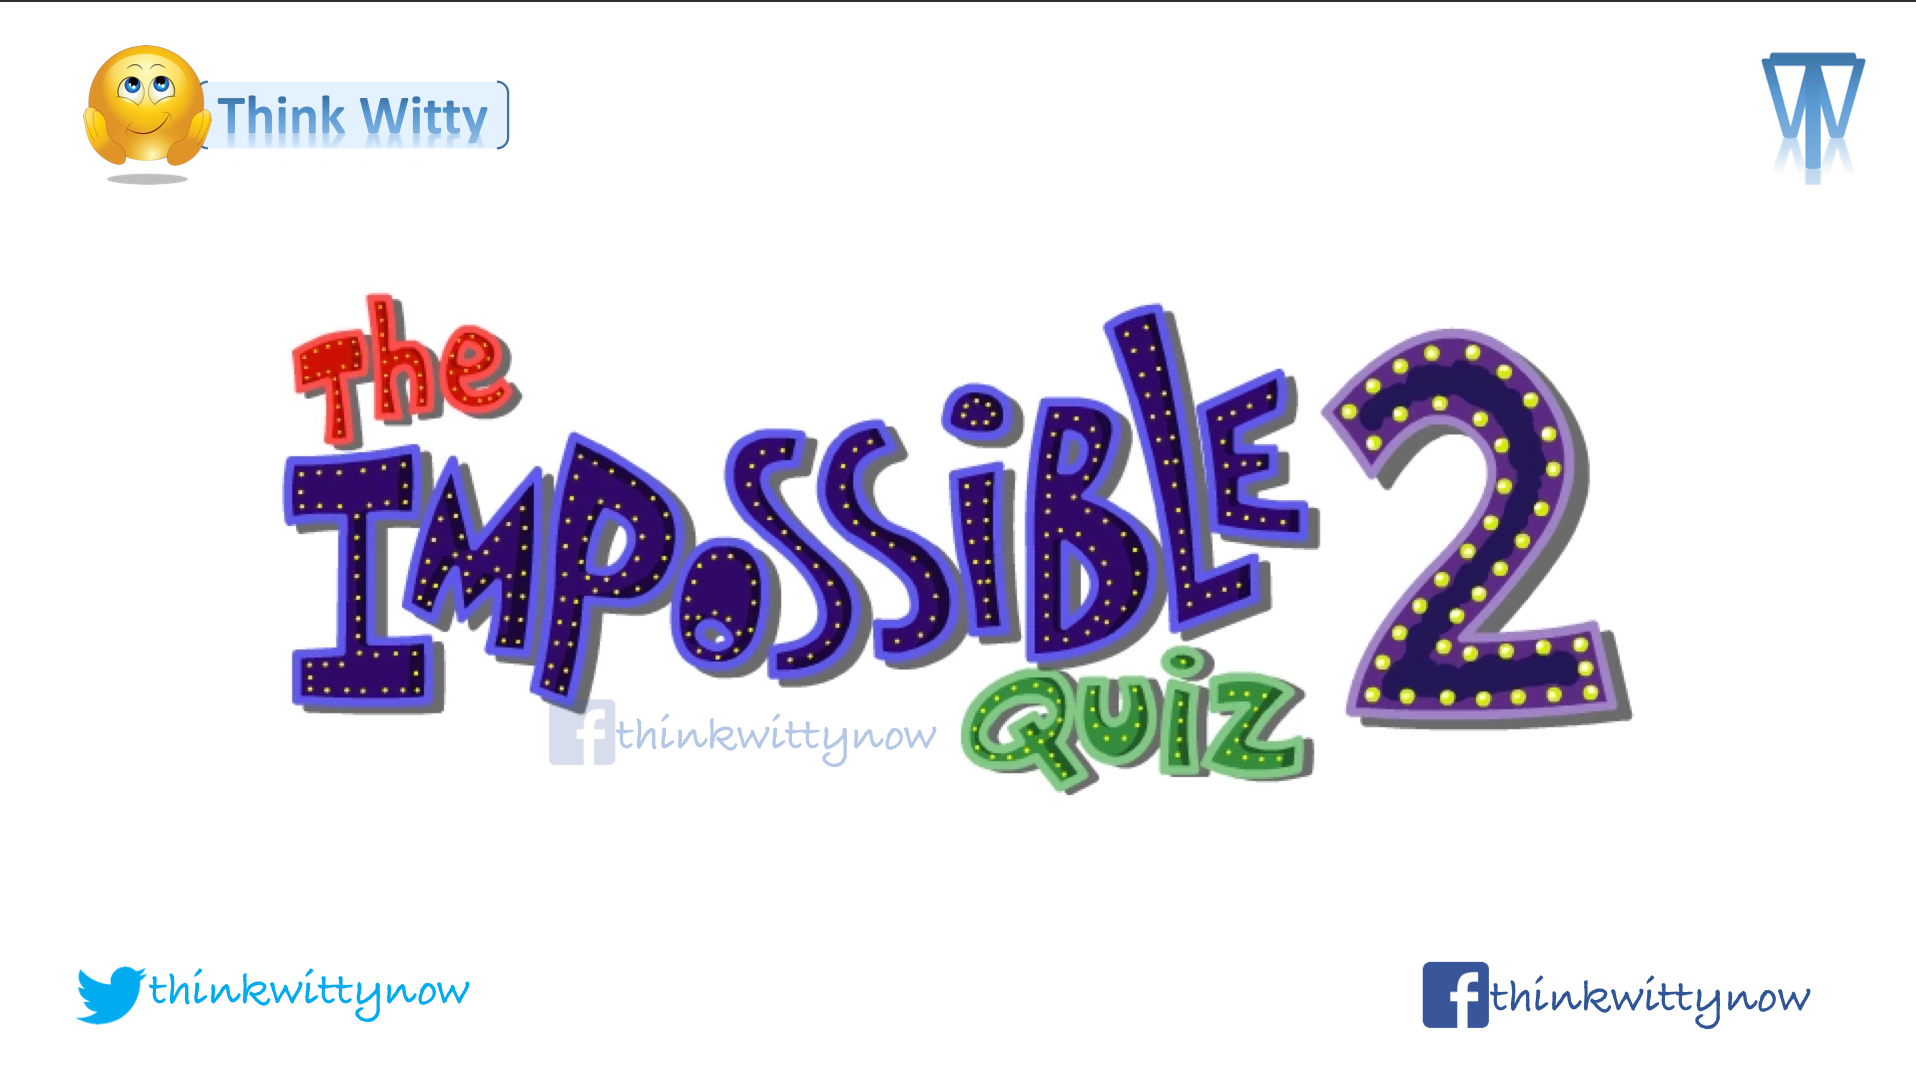 Answers to Impossible Quiz 2 - Think Witty